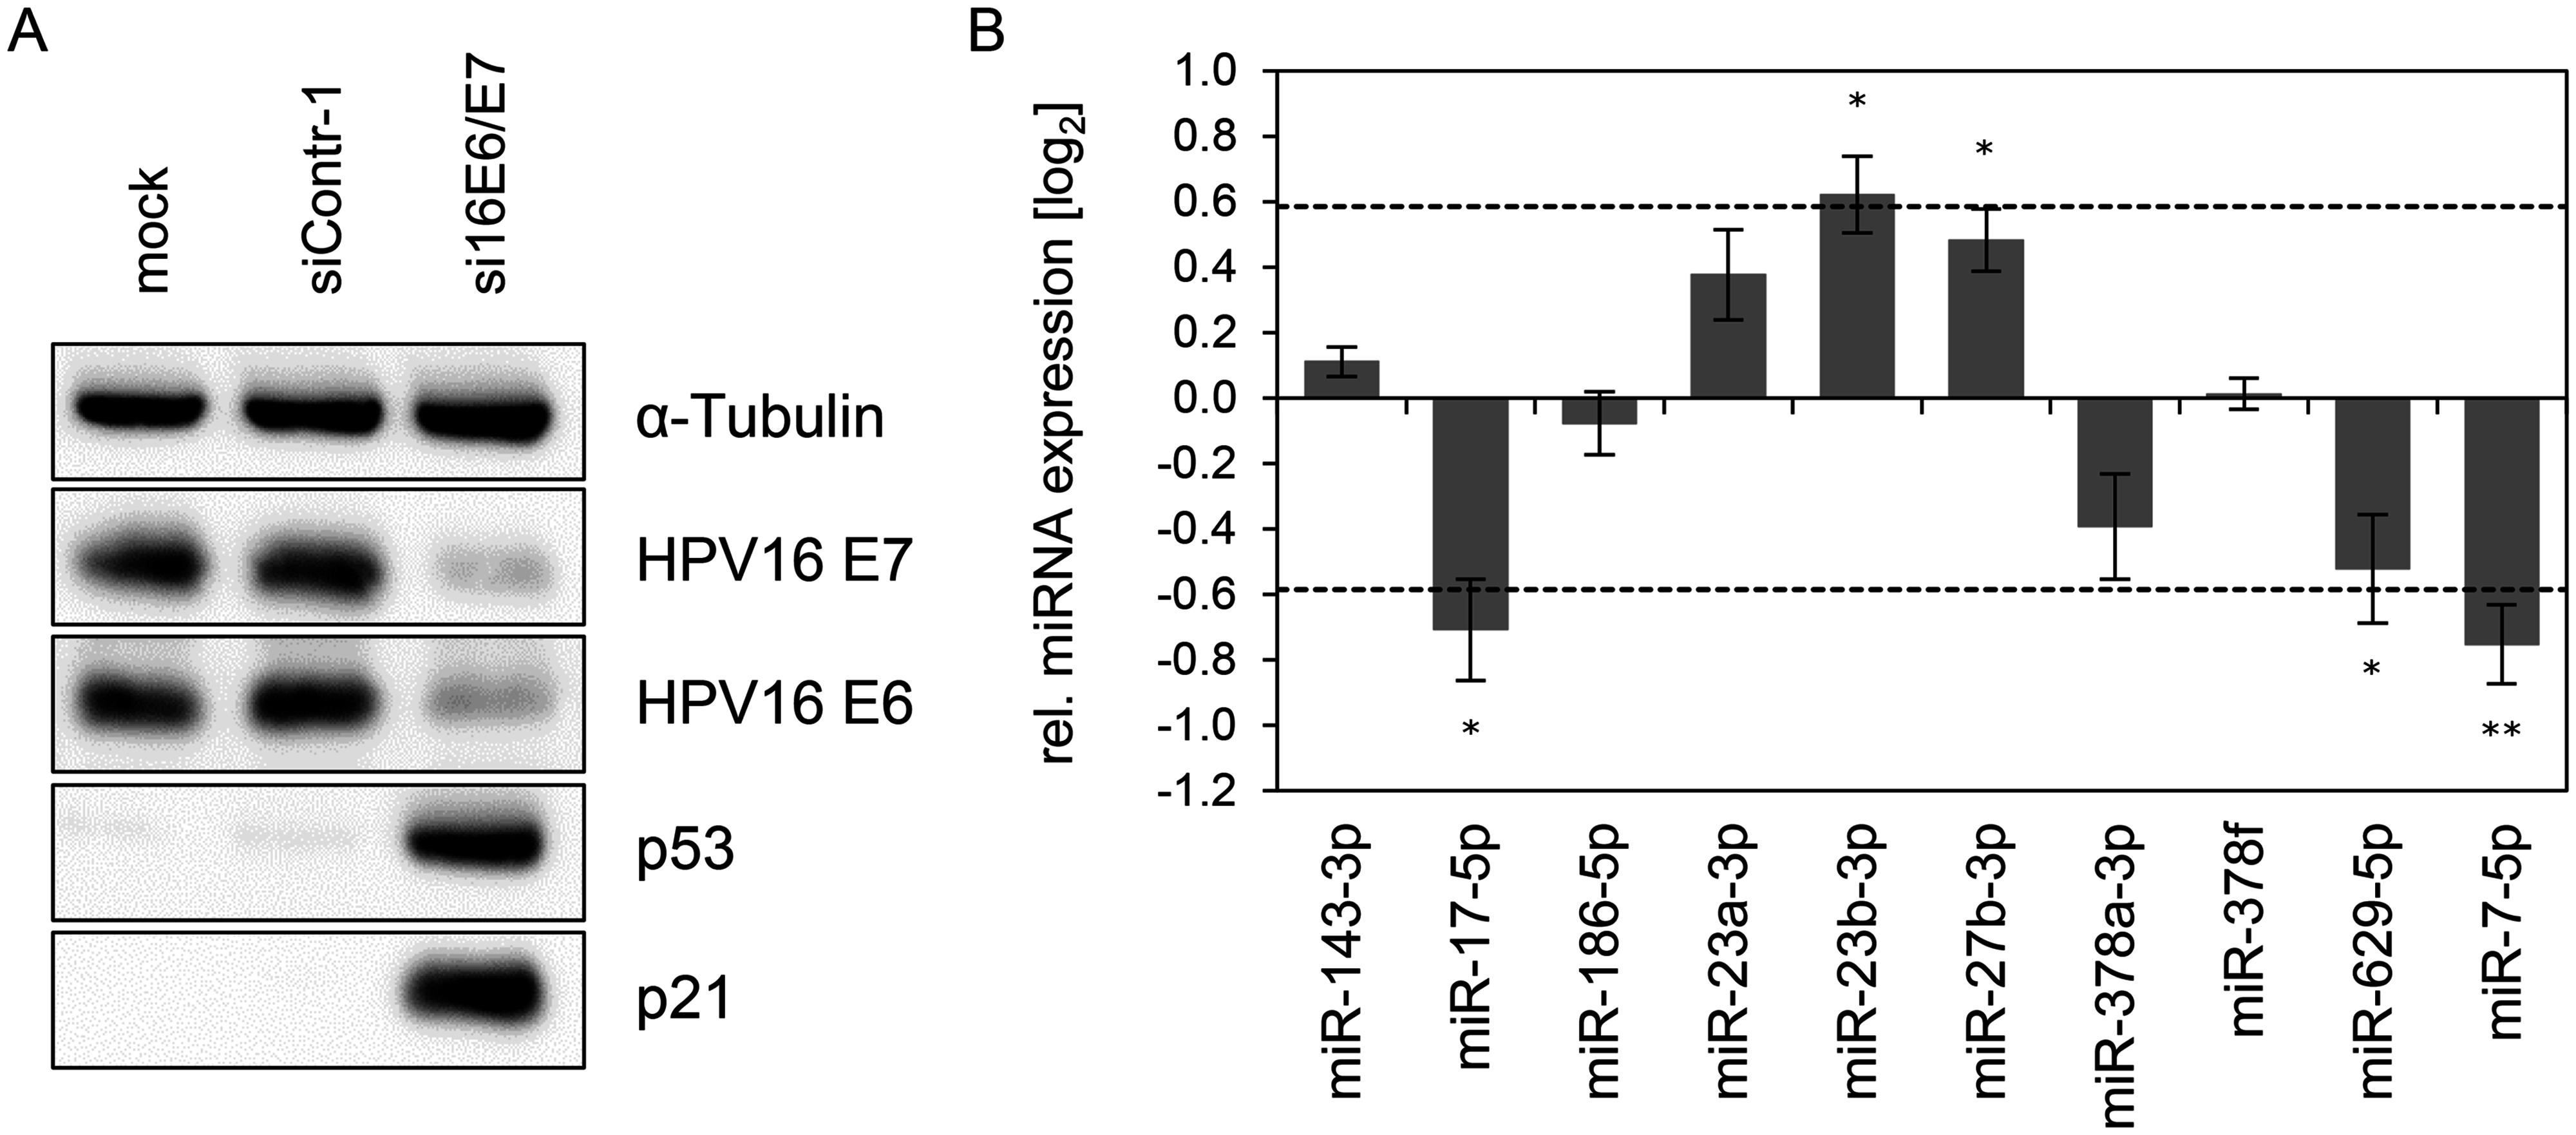 Inhibition of endogenous HPV16 <i>E6/E7</i> expression: Effects on selected intracellular miRNAs.